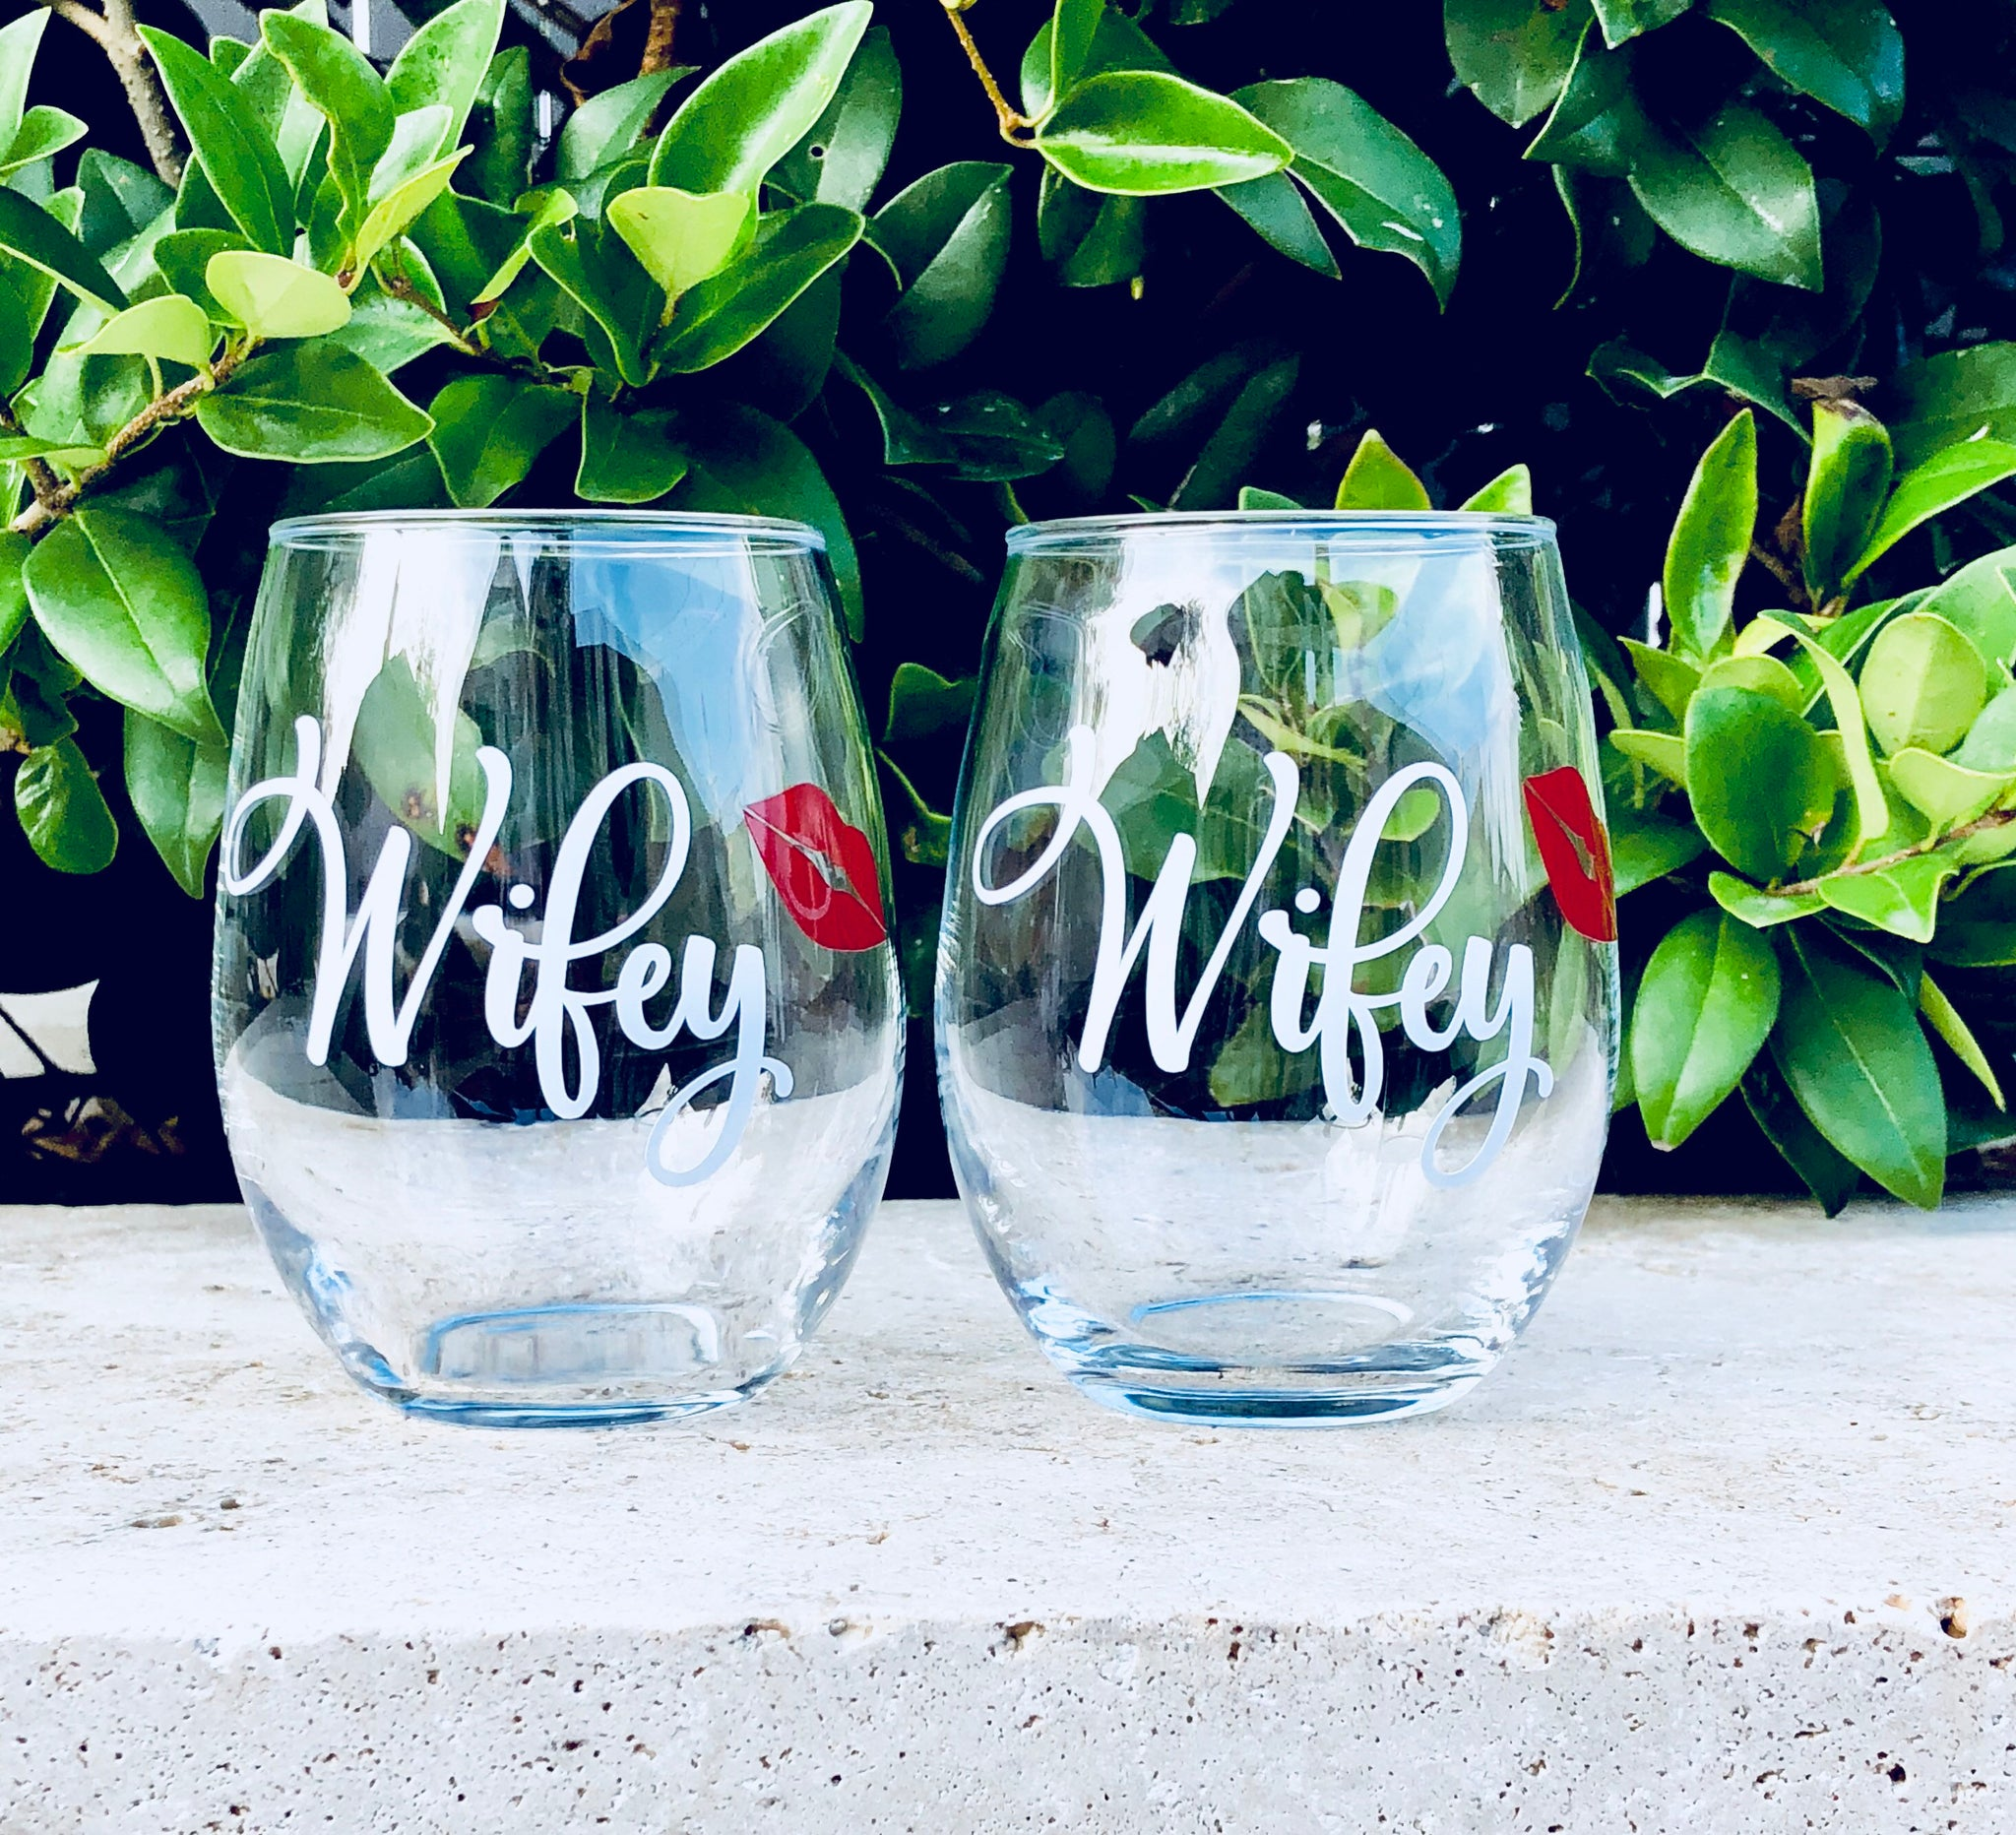 lesbian wine glasses, lesbian wedding glasses, lesbian wifey glasses, cute lesbian gift, same sex marriage, wifey wine glass, brides wine